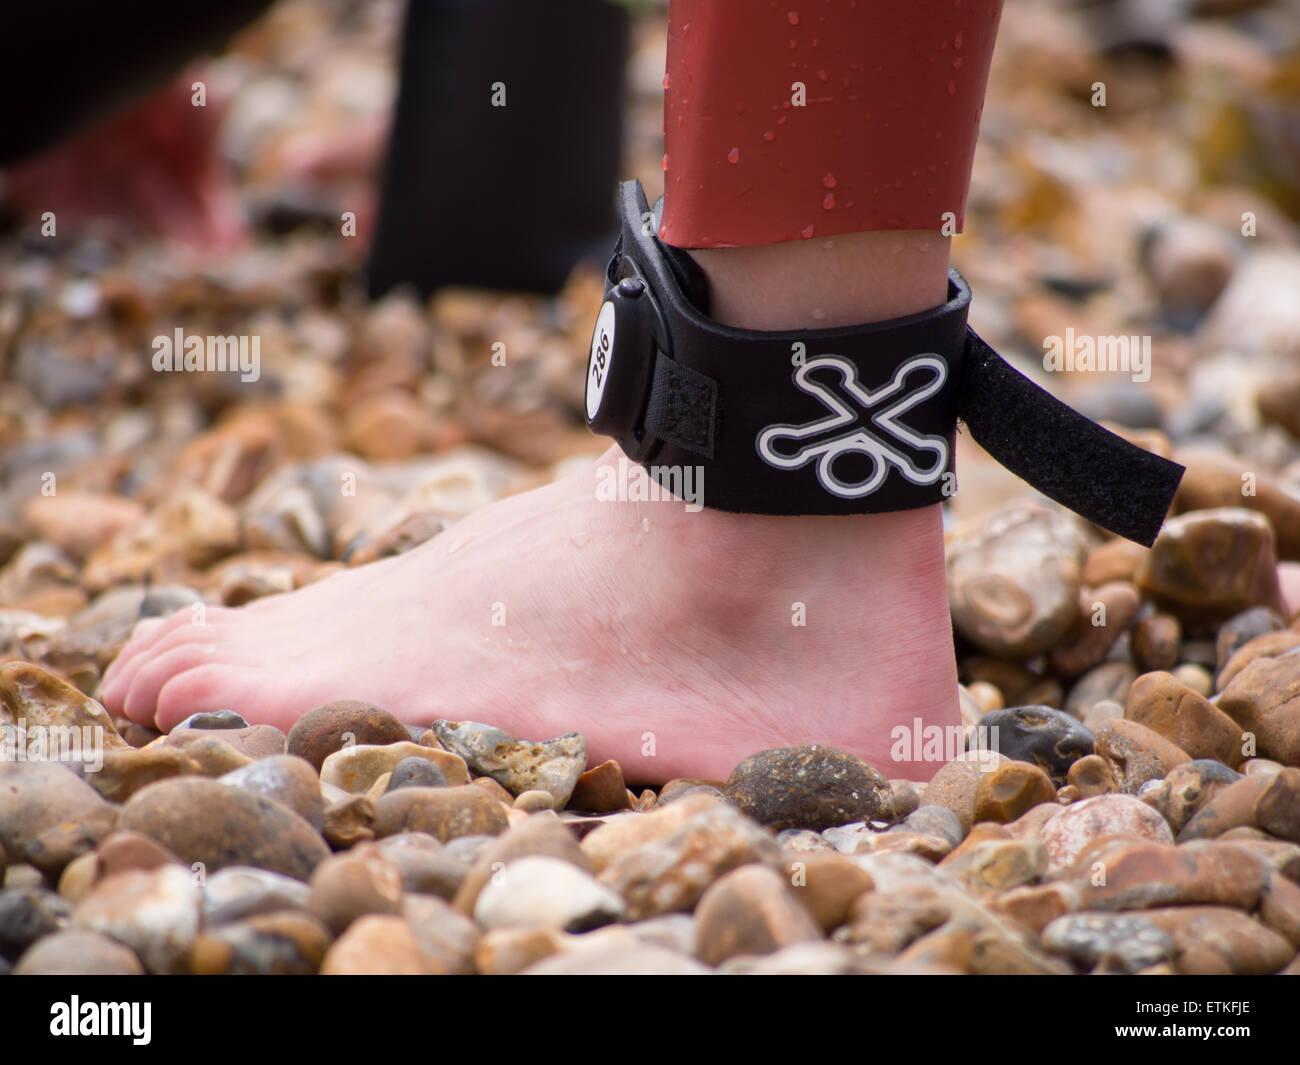 A sports timing chip on the ankle of a competitor taking part in a triathlon. - Stock Image